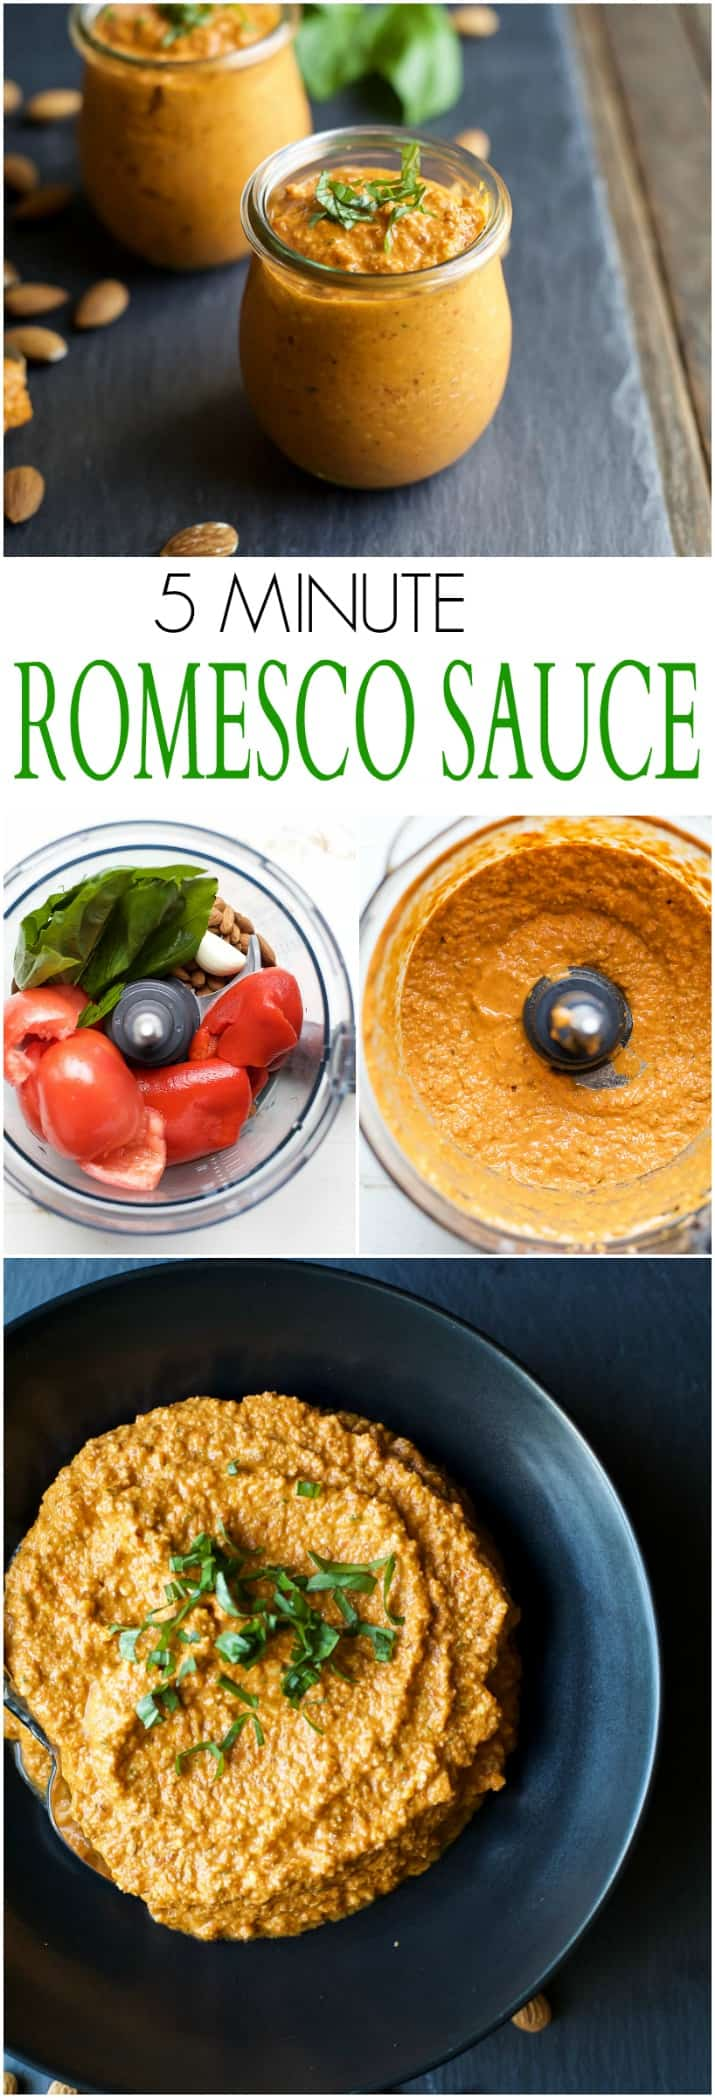 Quick & Easy 5 Minute Romesco Sauce, this spanish sauce is pure magic. You can use it as a marinade, condiment, dip or just eat it with a spoon! Made from just 7 ingredients in a blender this sauce comes together in minutes! | joyfulhealthyeats.com #paleo #glutenfree